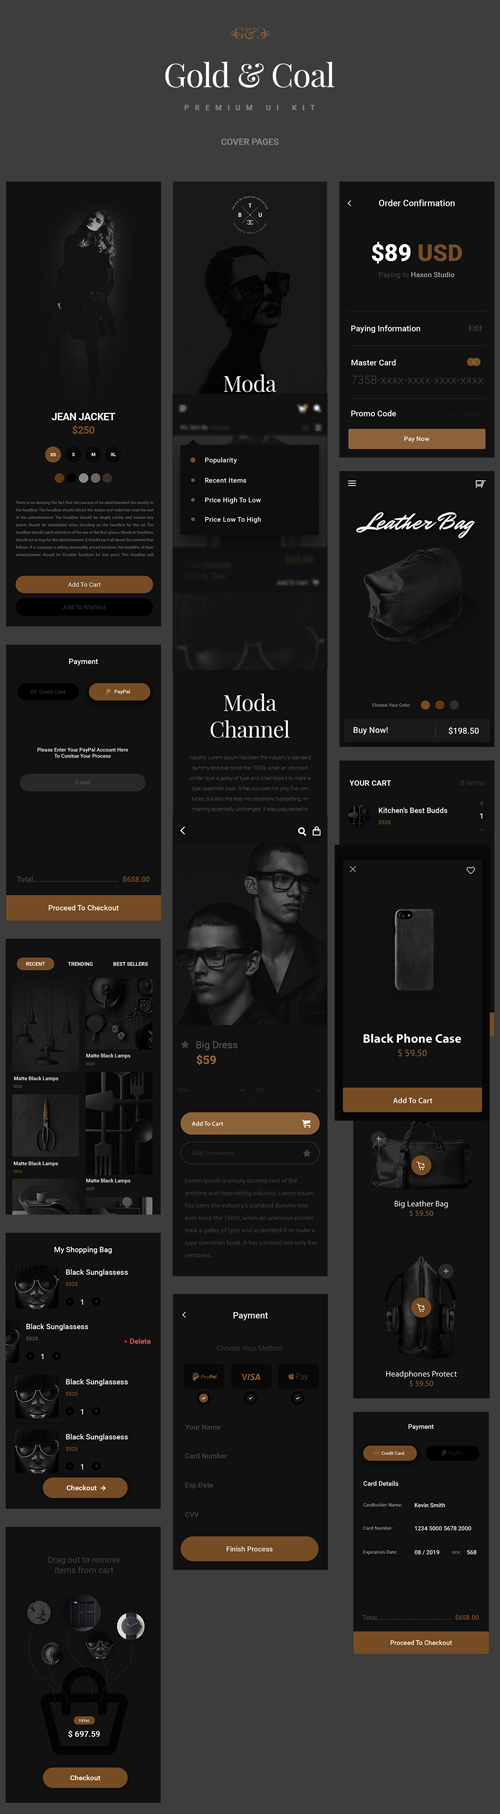 Free E-Commerce Apps UI Kit